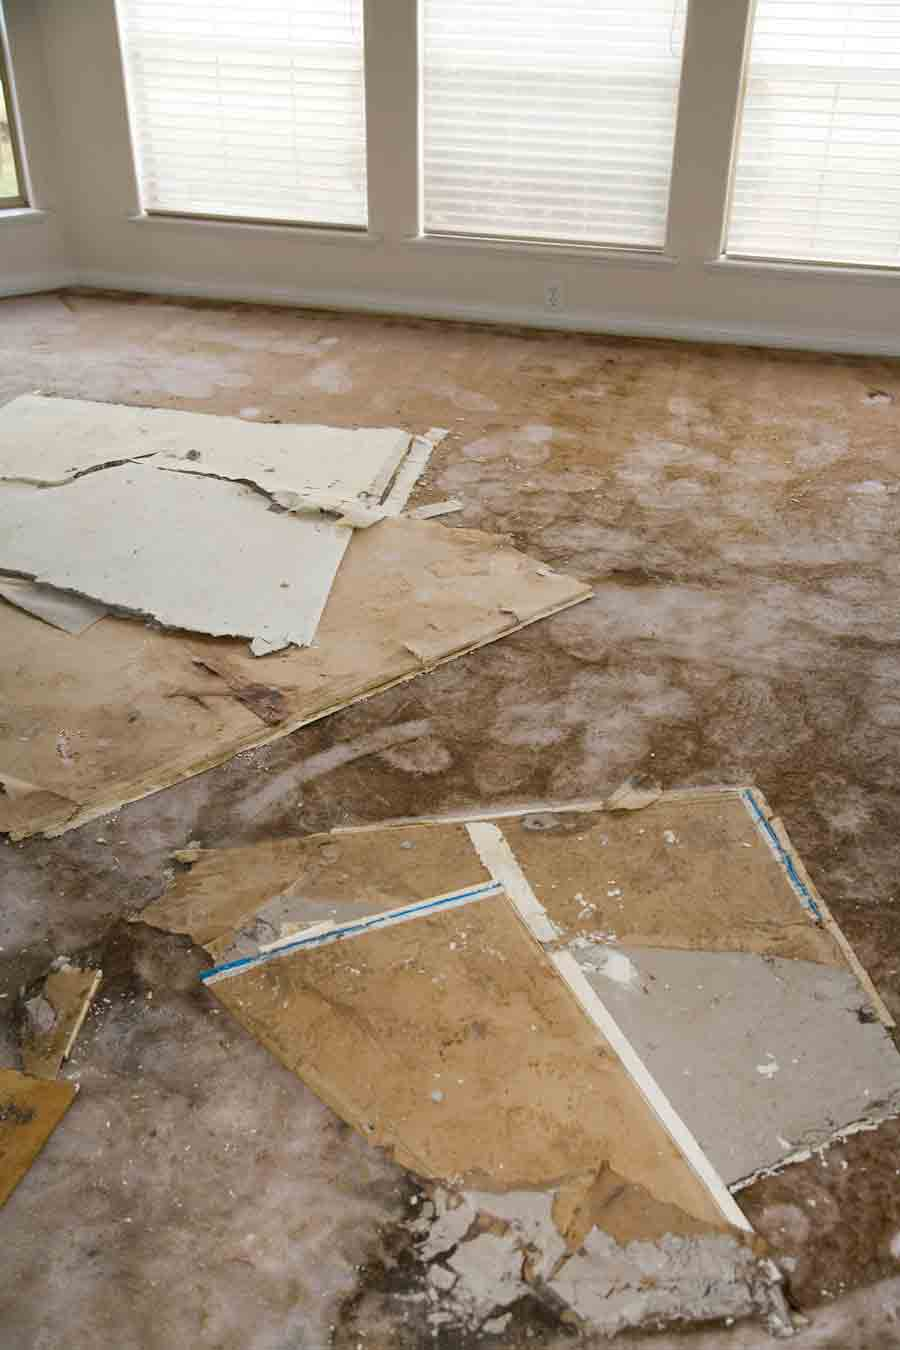 Slab Leak In Cape Coral | 3 Reasons a Slab Leak Must Be Fixed Immediately